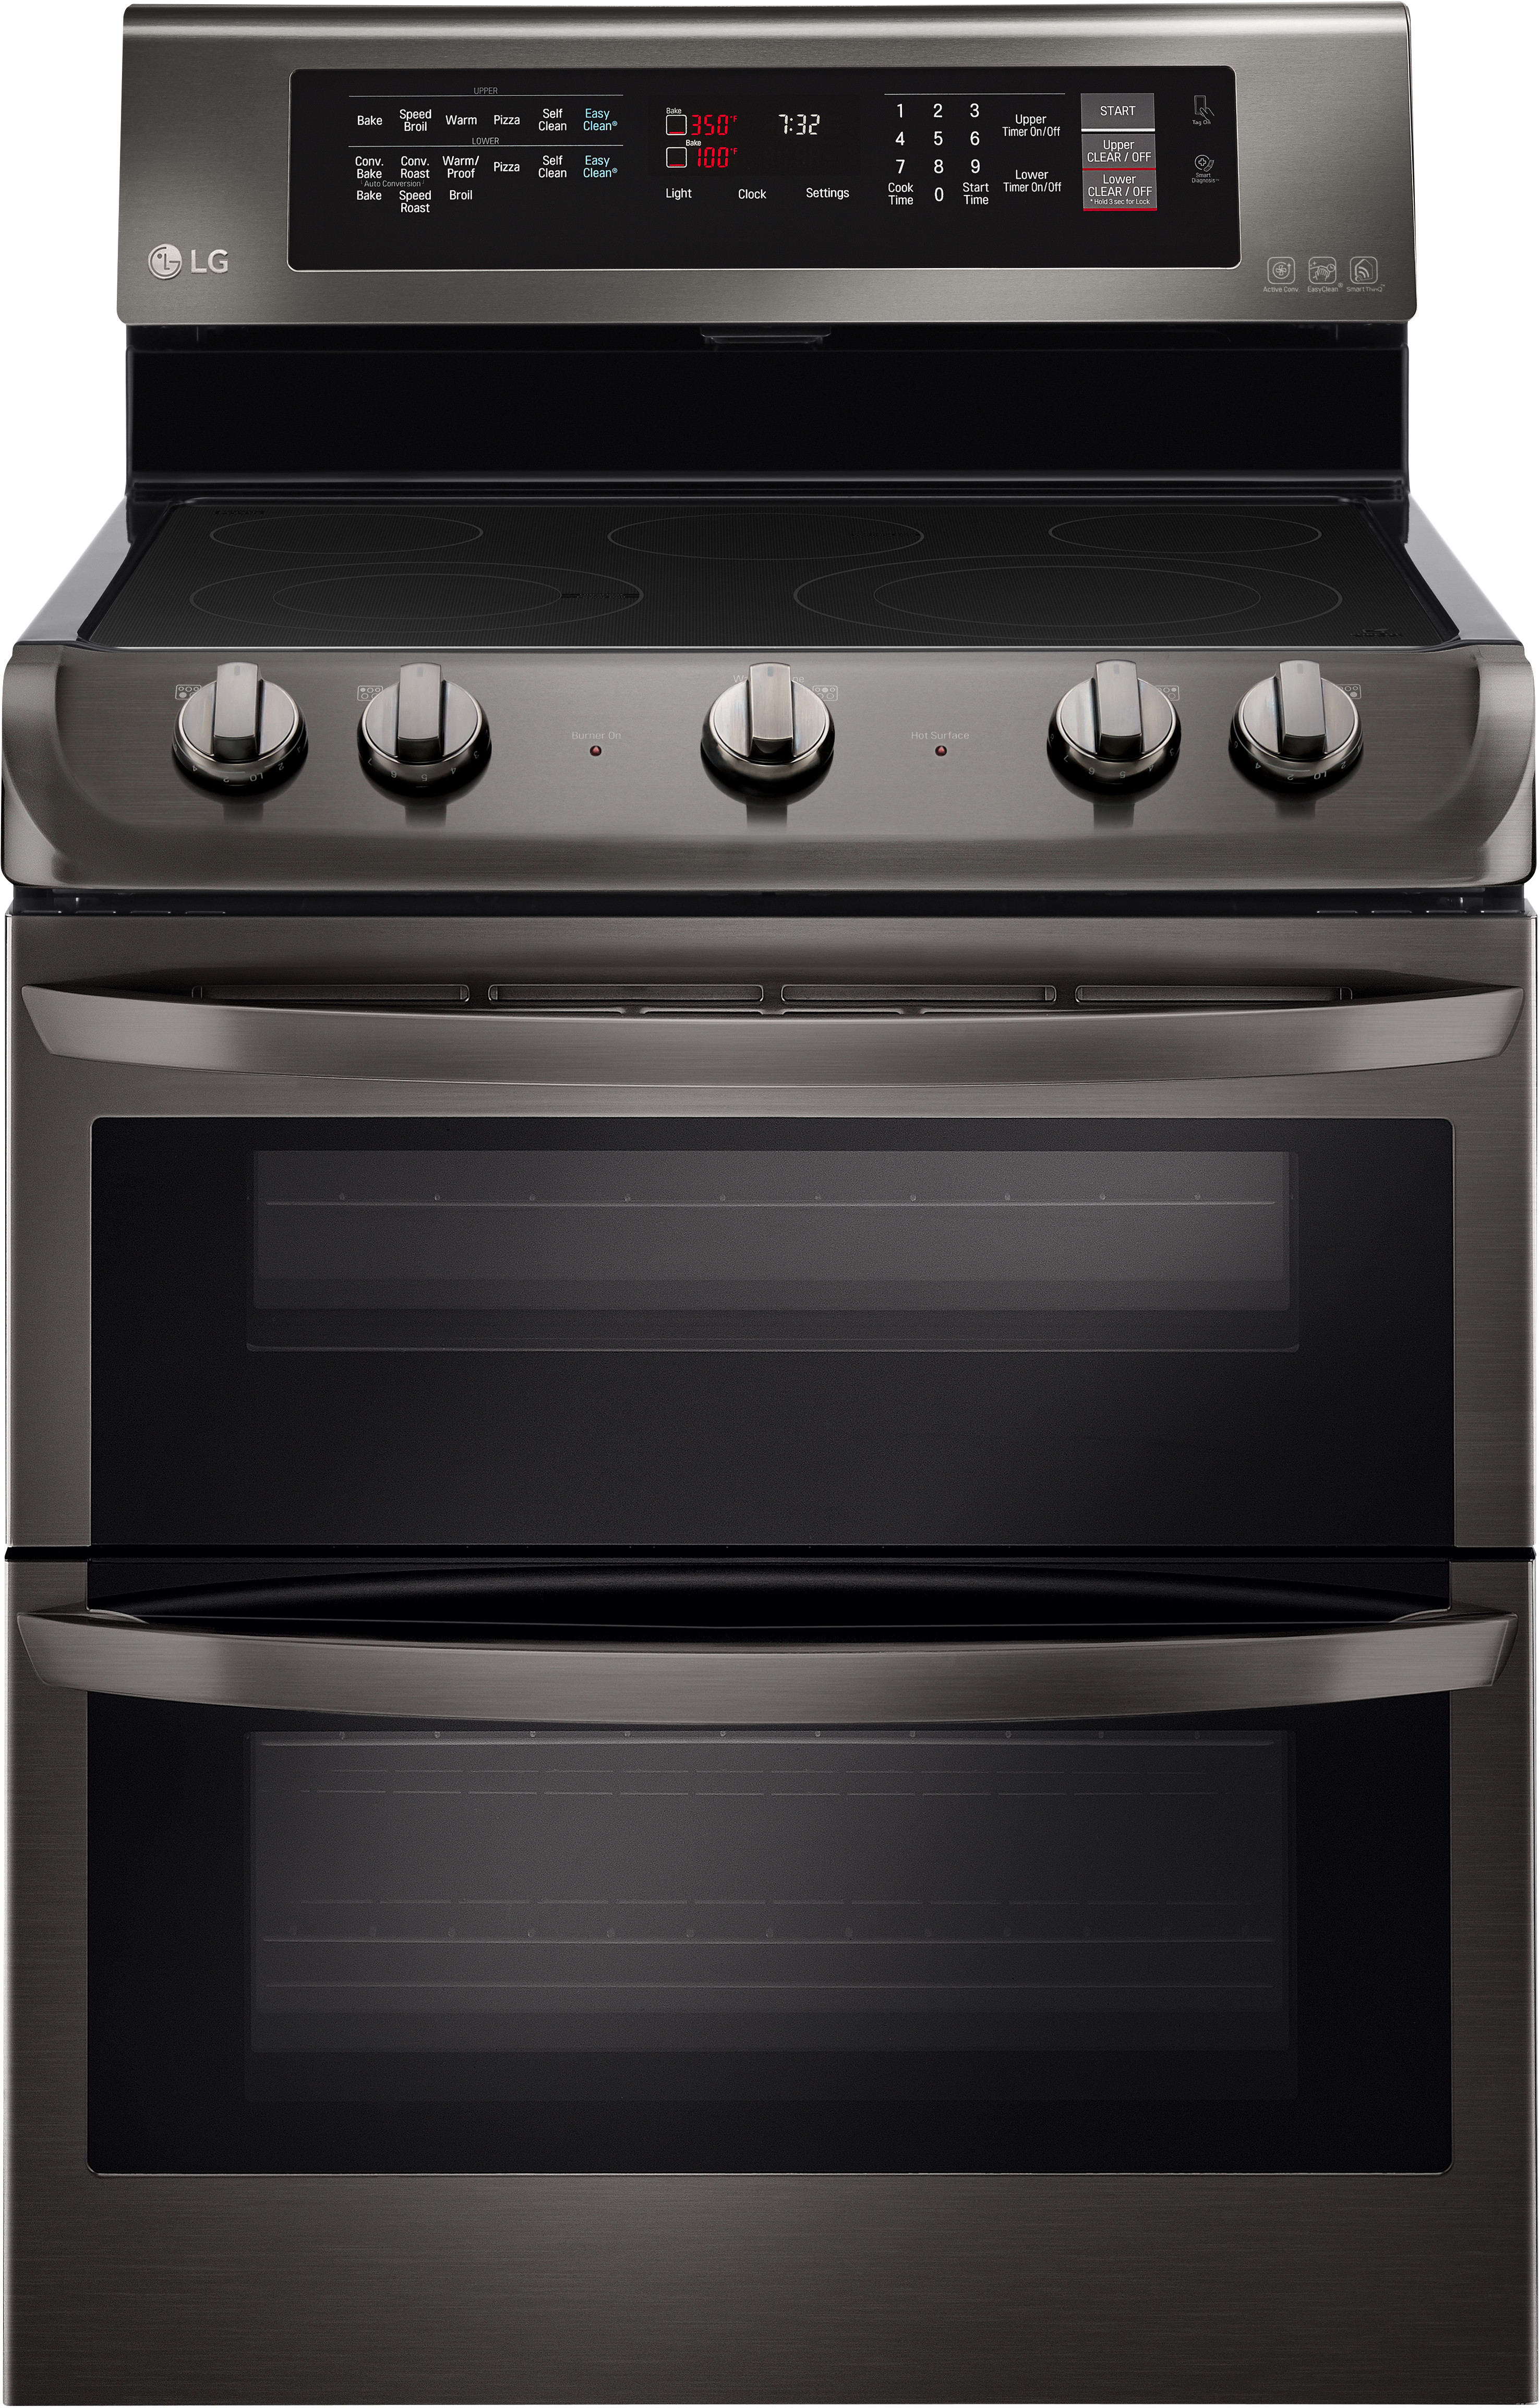 Lg double oven gas range reviews - Lg Lde4413bd 30 Inch Dual Oven Electric Range With 7 3 Cu Ft Capacity 5 Radiant Heating Elements 6 Inch 9 Inch 3200w Ultraheat Dual Element